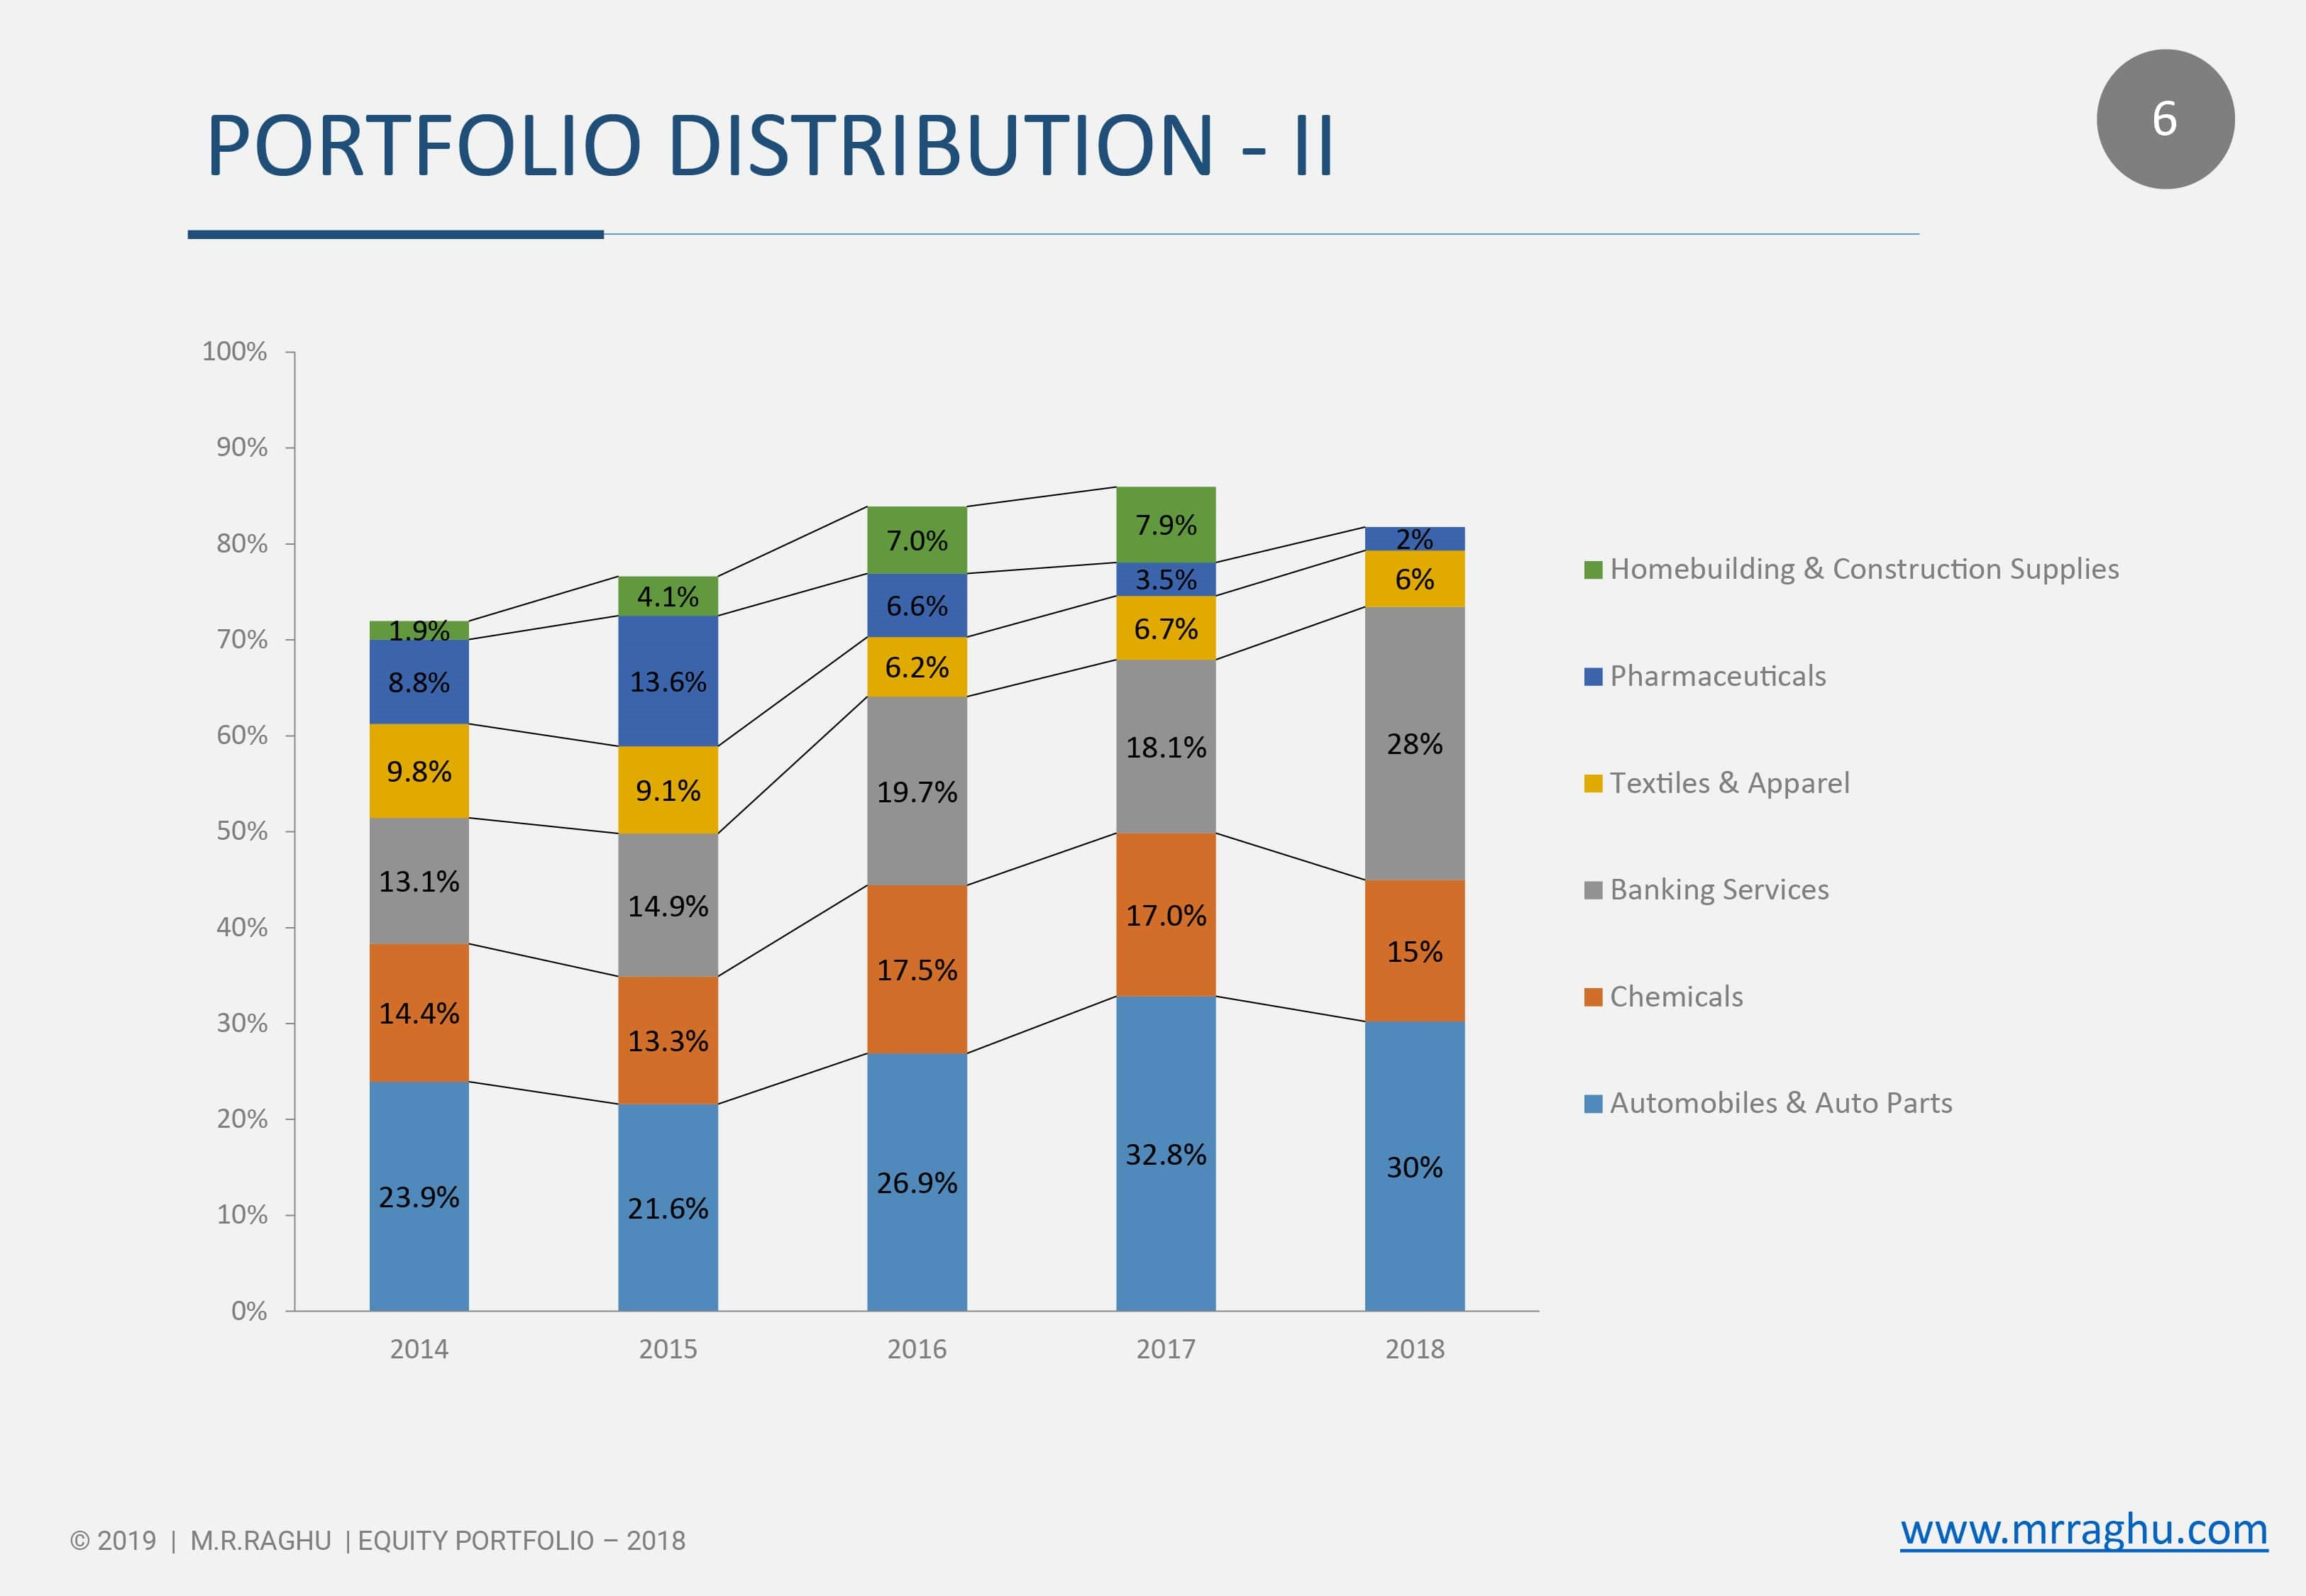 PORTFOLIO DISTRIBUTION - II - 2018